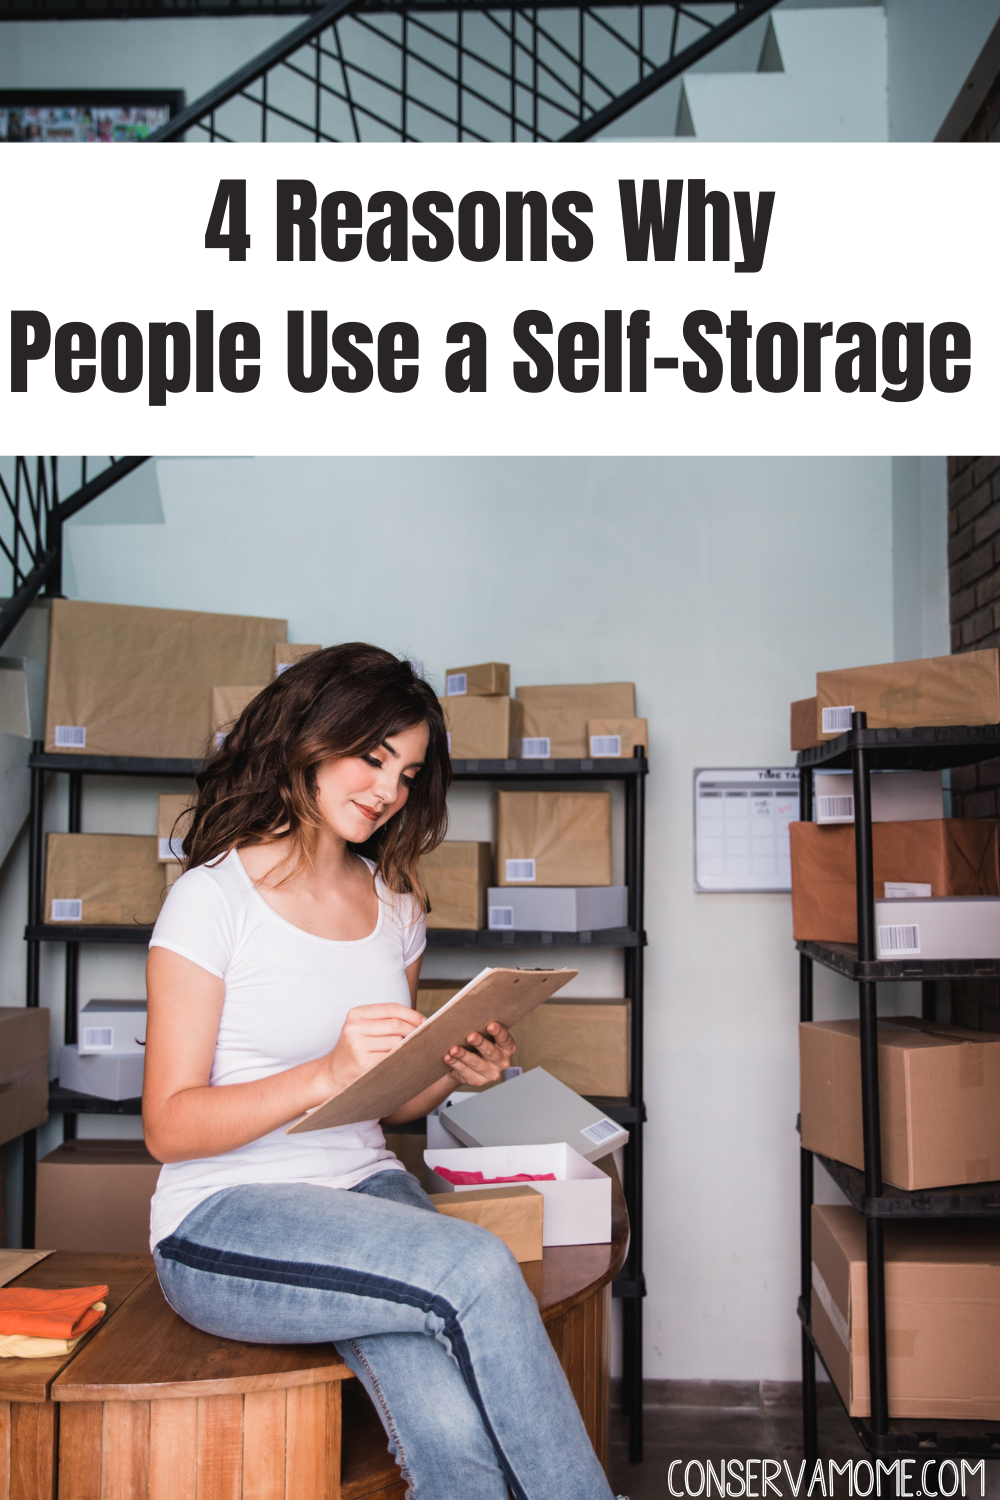 4 Reasons Why People Use a Self-Storage Unit